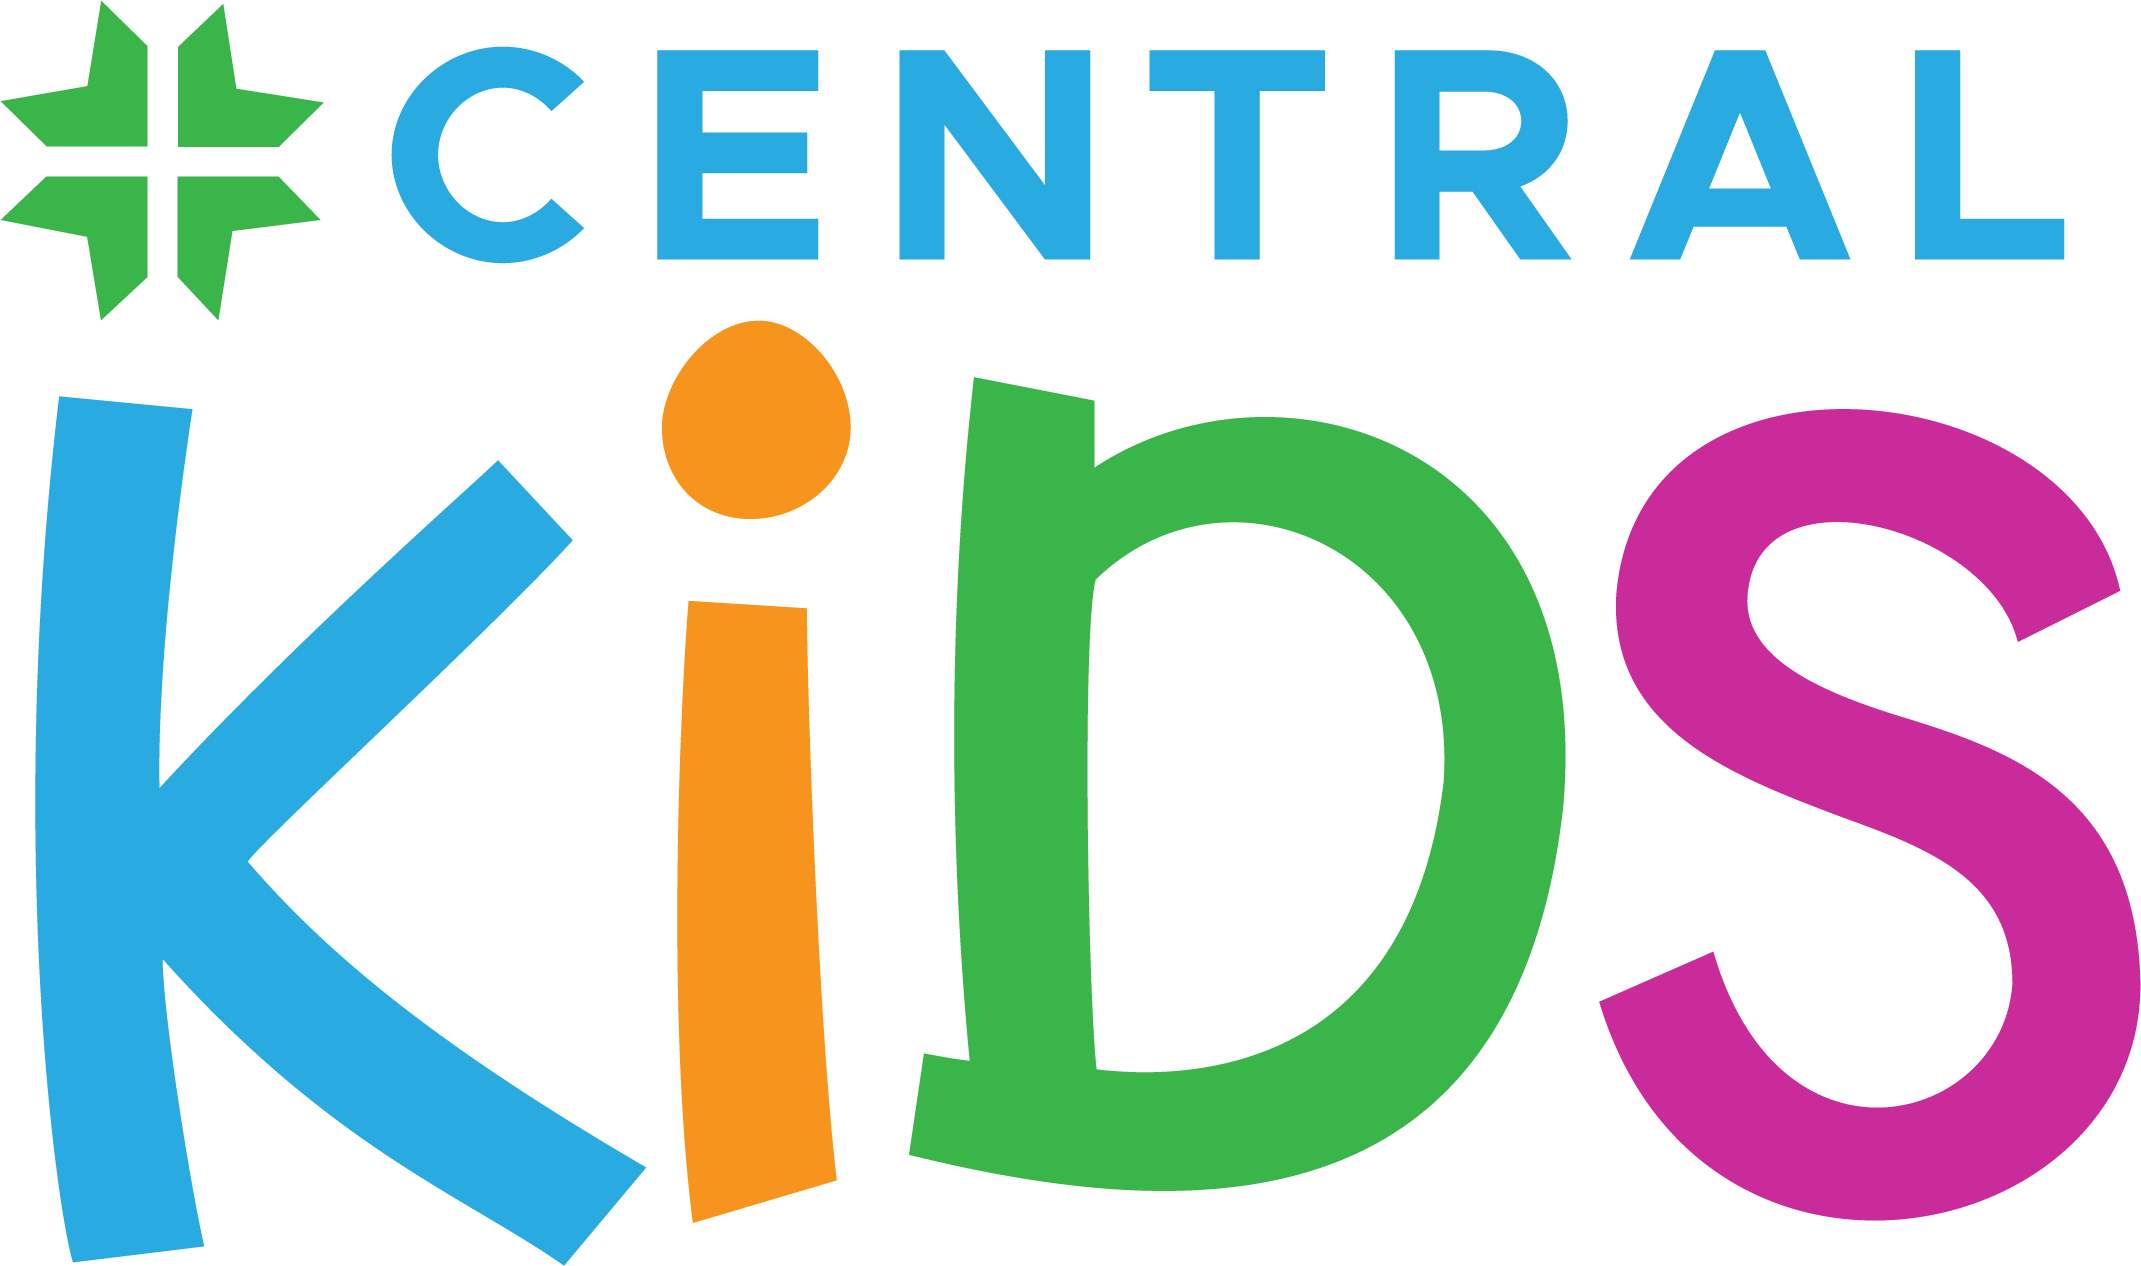 Central Kids LOGO BLOCK_COLOR600 ppi